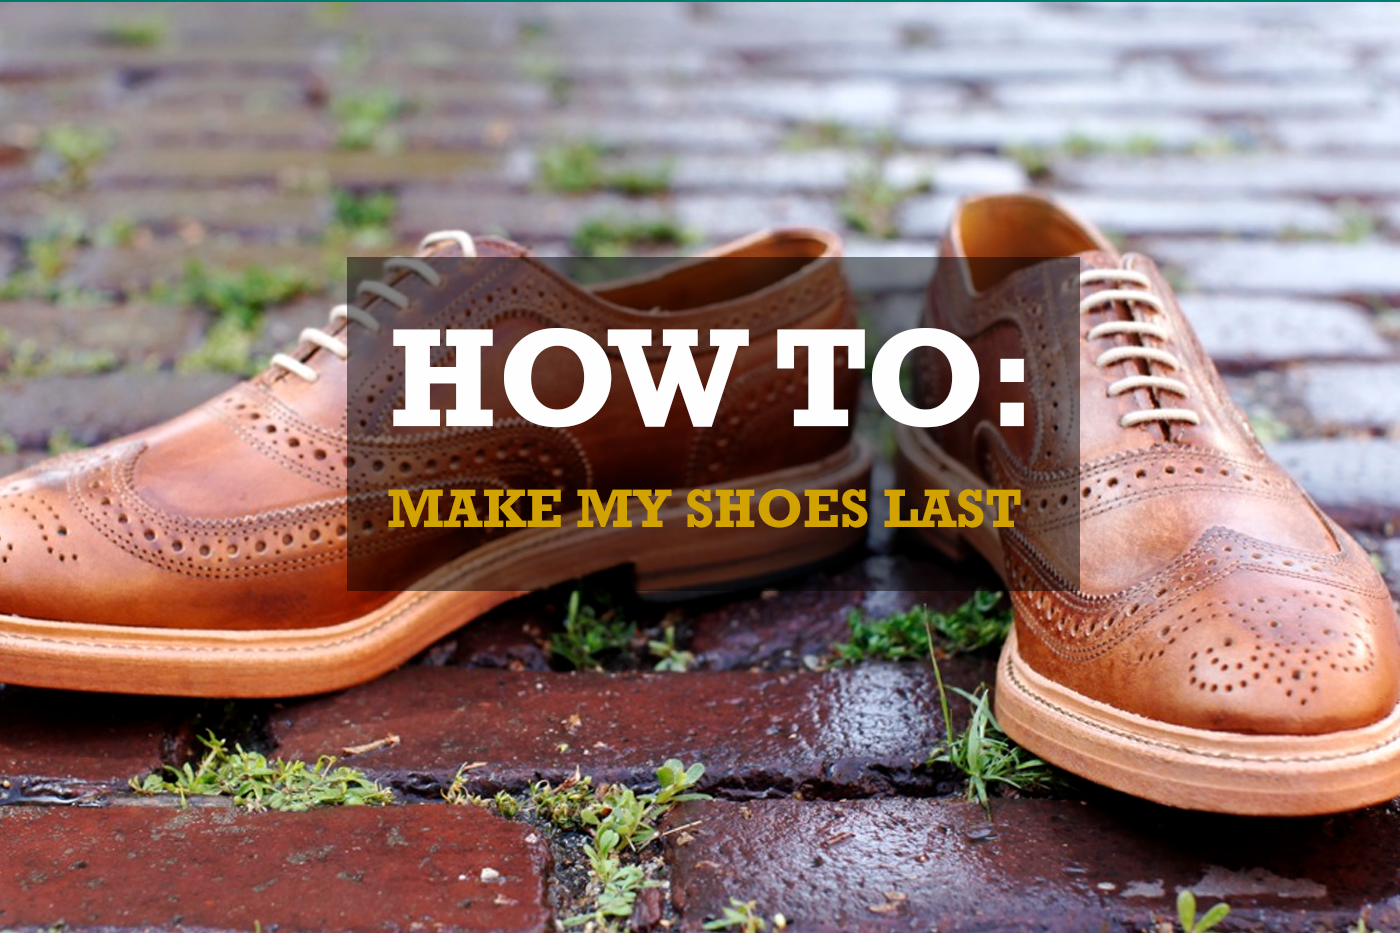 5 ways to make shoes last longer | Buy it for life BIFL